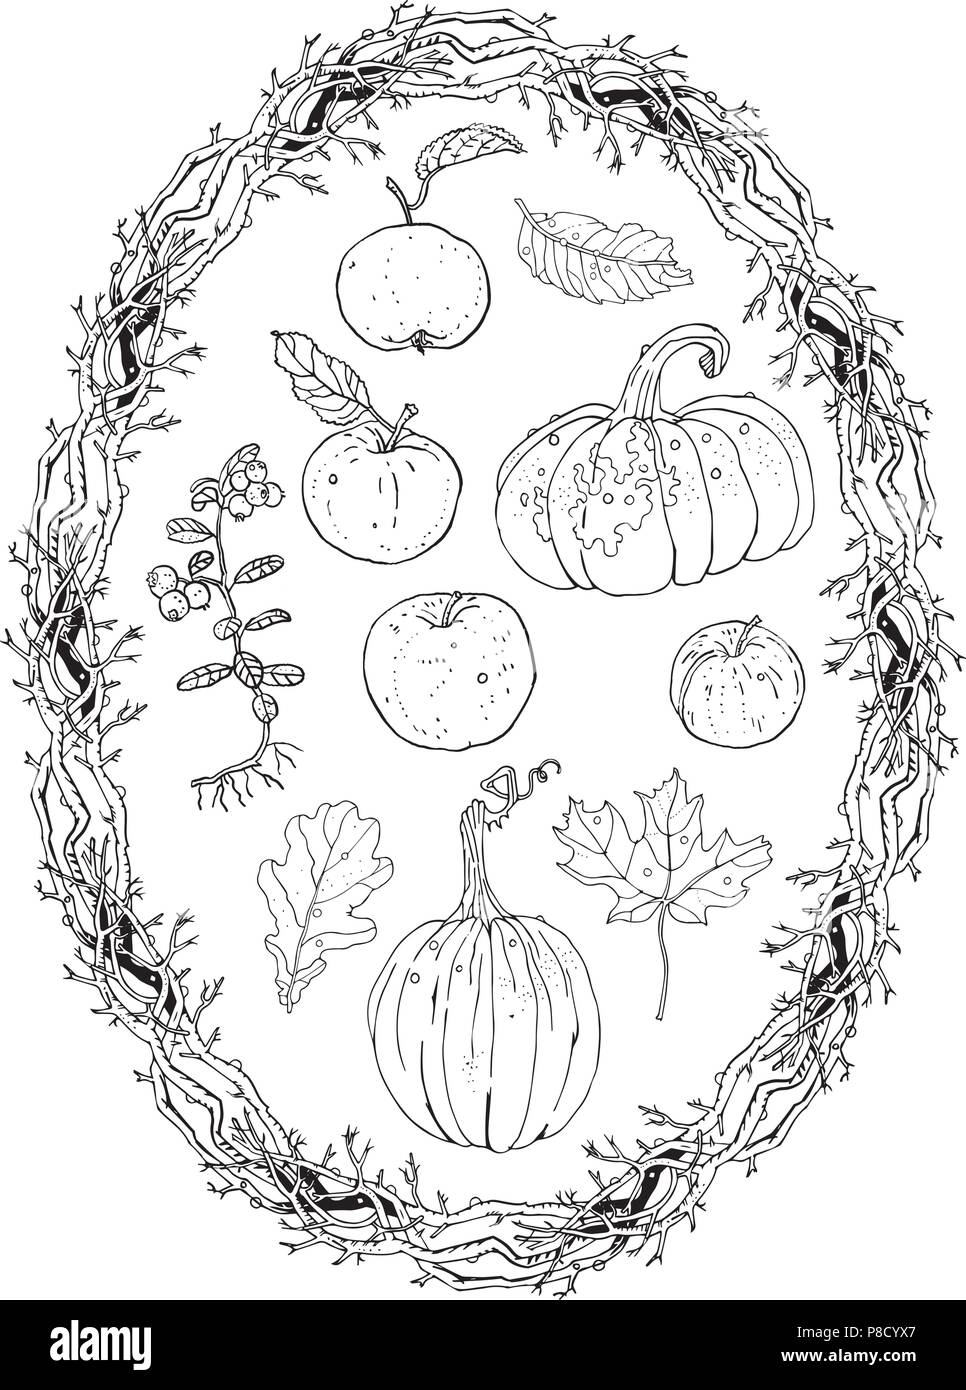 hight resolution of autumn harvest clipart set oval wreath branches frame pumpkins apples lingonberry oak maple falling leaves fall seasonal decoration coloring p